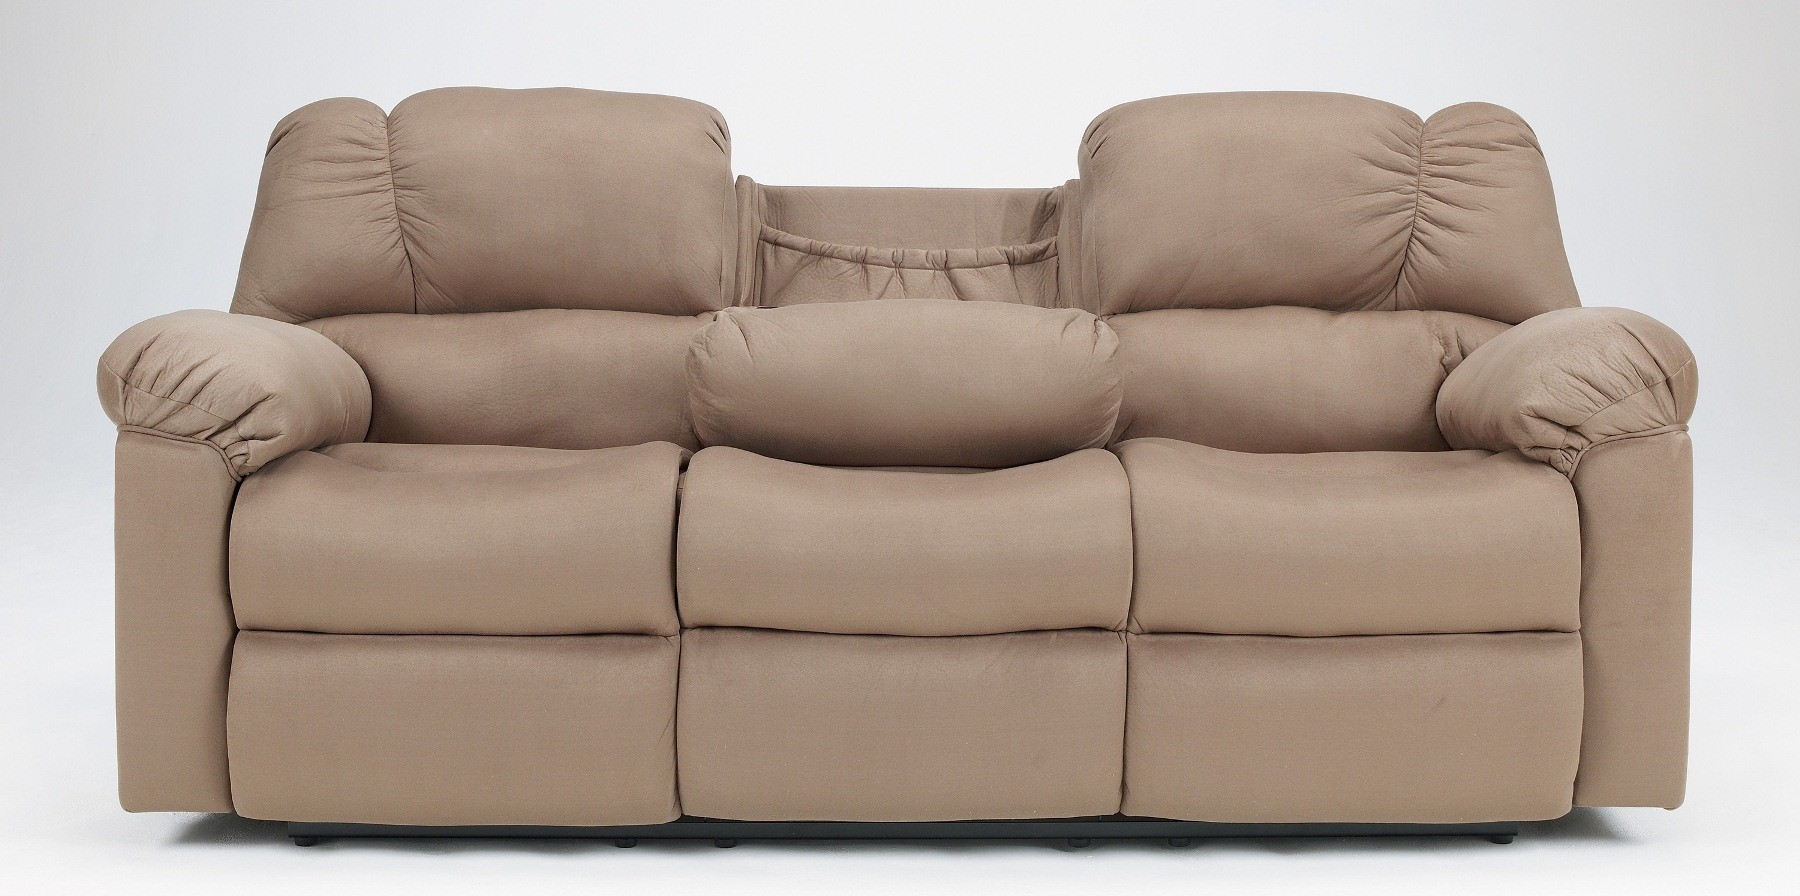 Eli cocoa reclining sofa cheap reclining sofas sale eli for Front room furniture sale